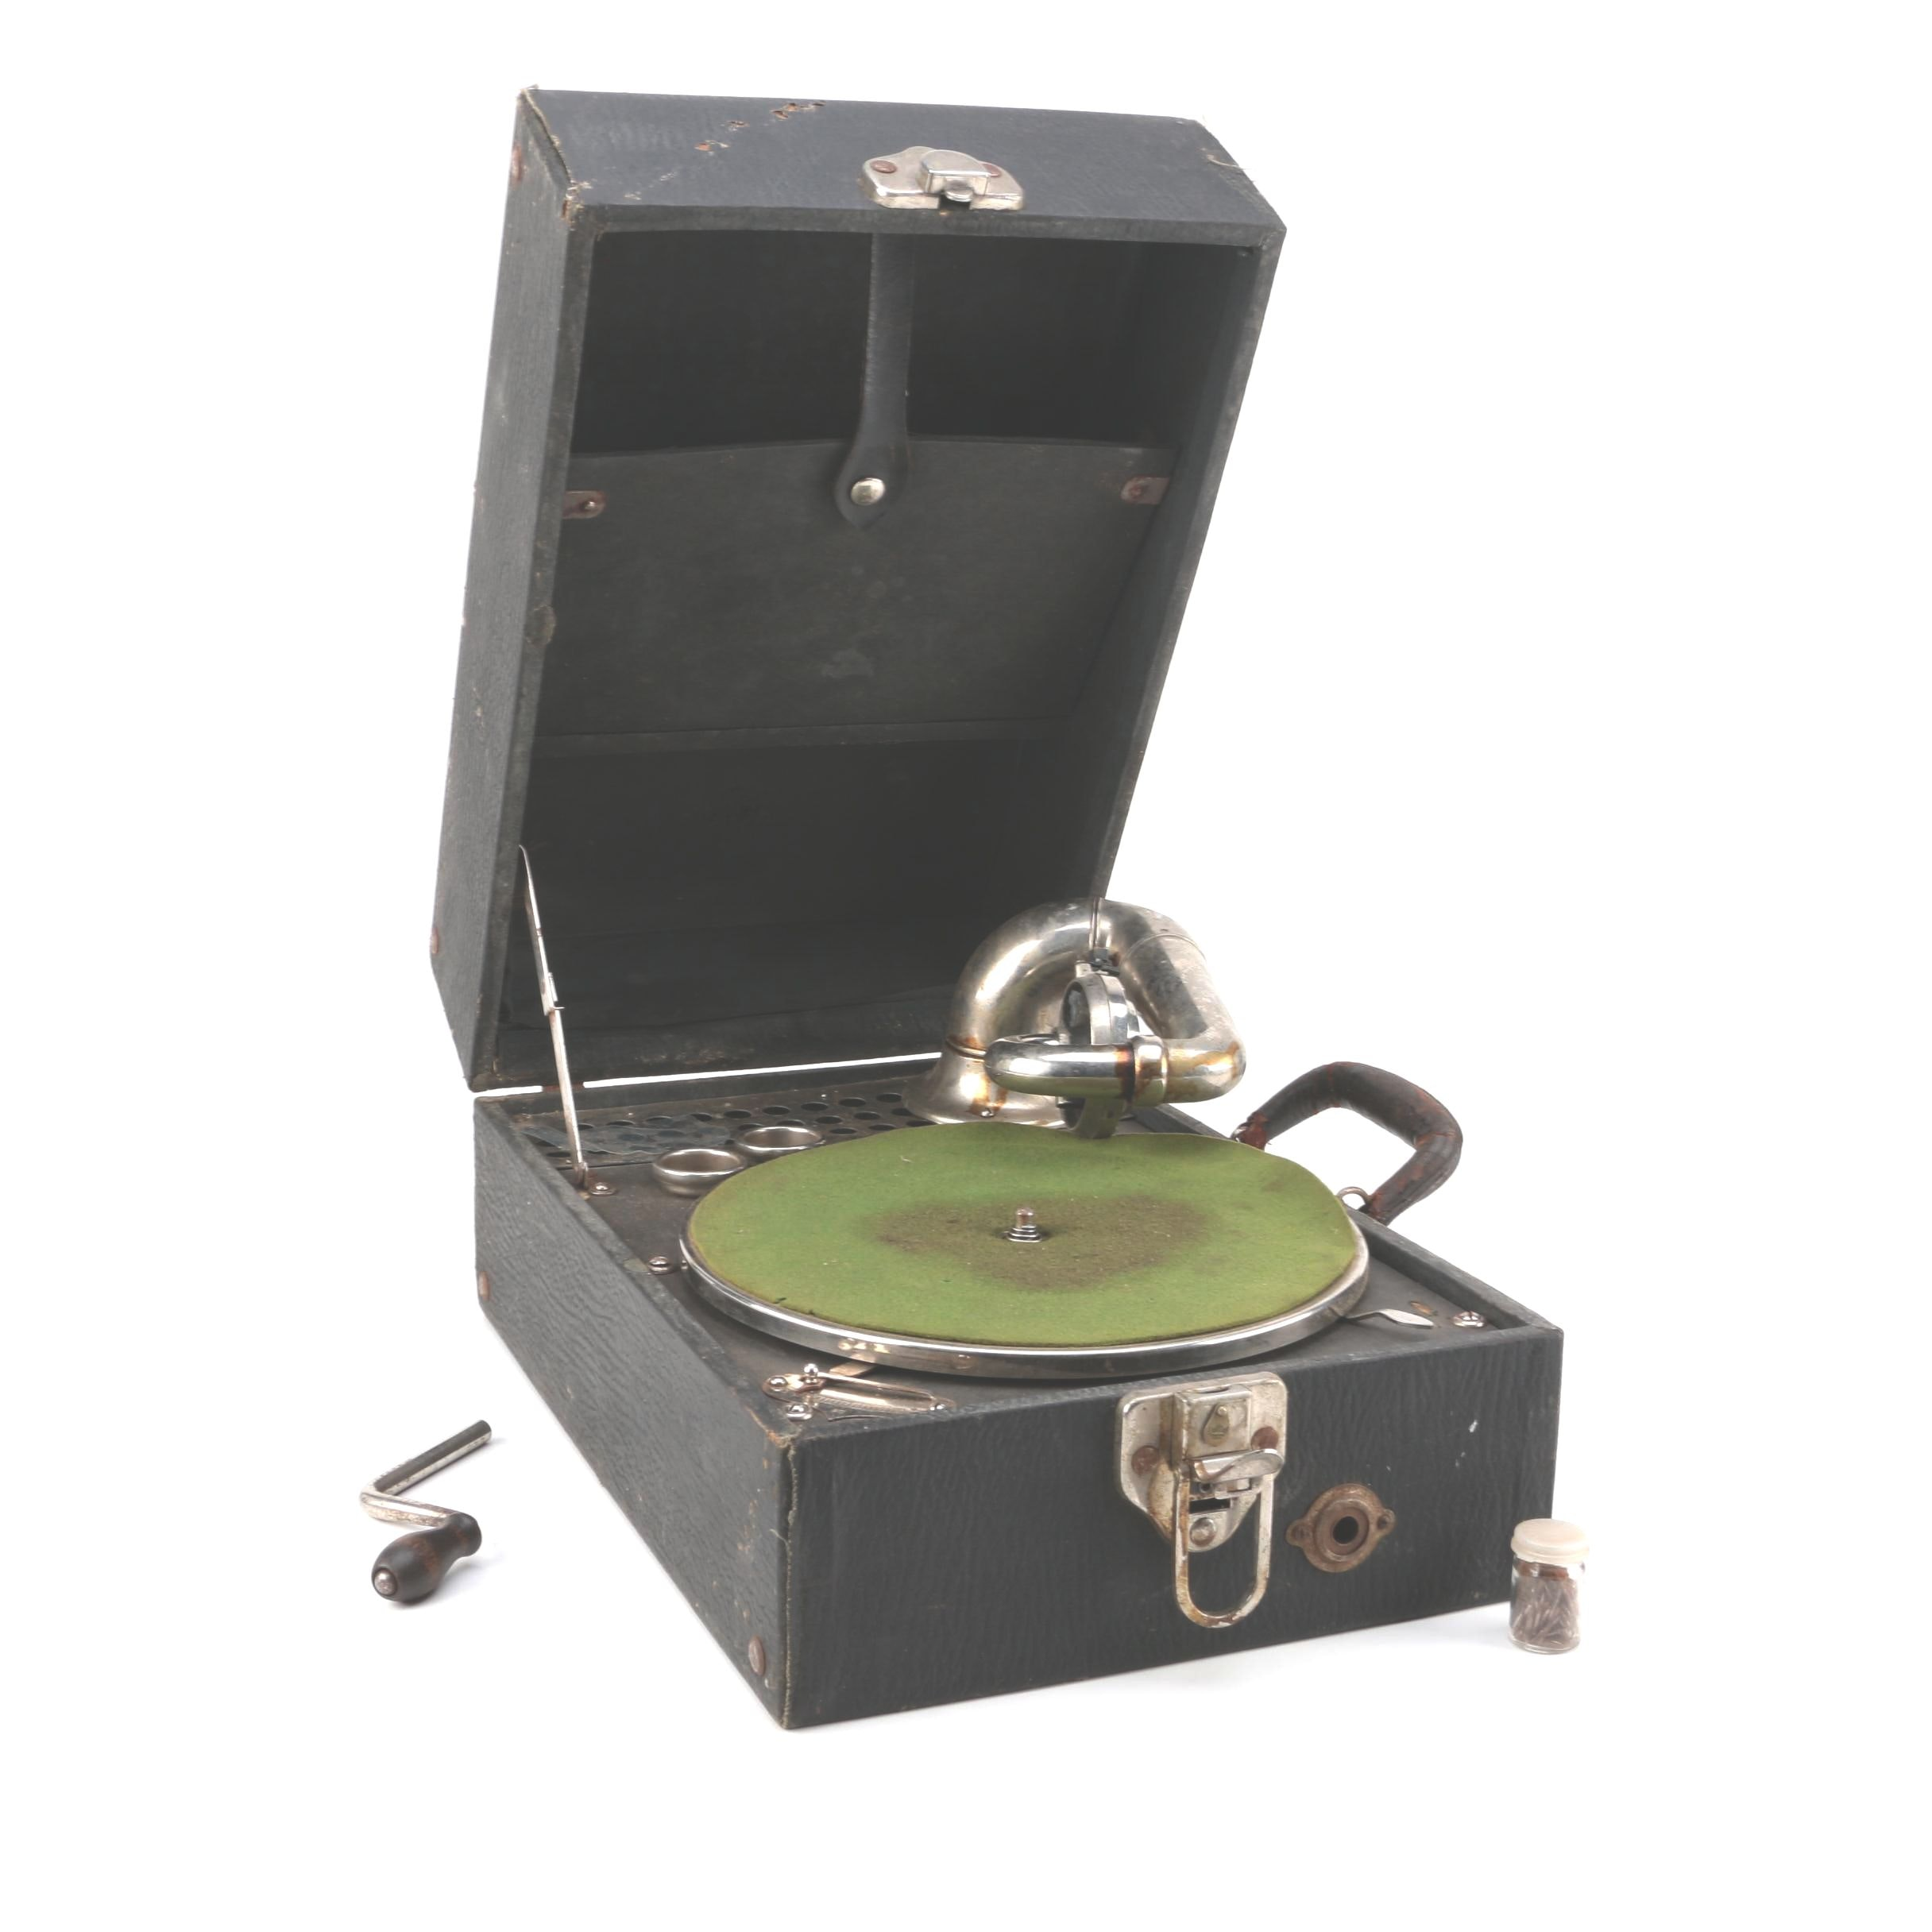 Vintage Caswell Manufacturing Co. GranTone Phonograph Player